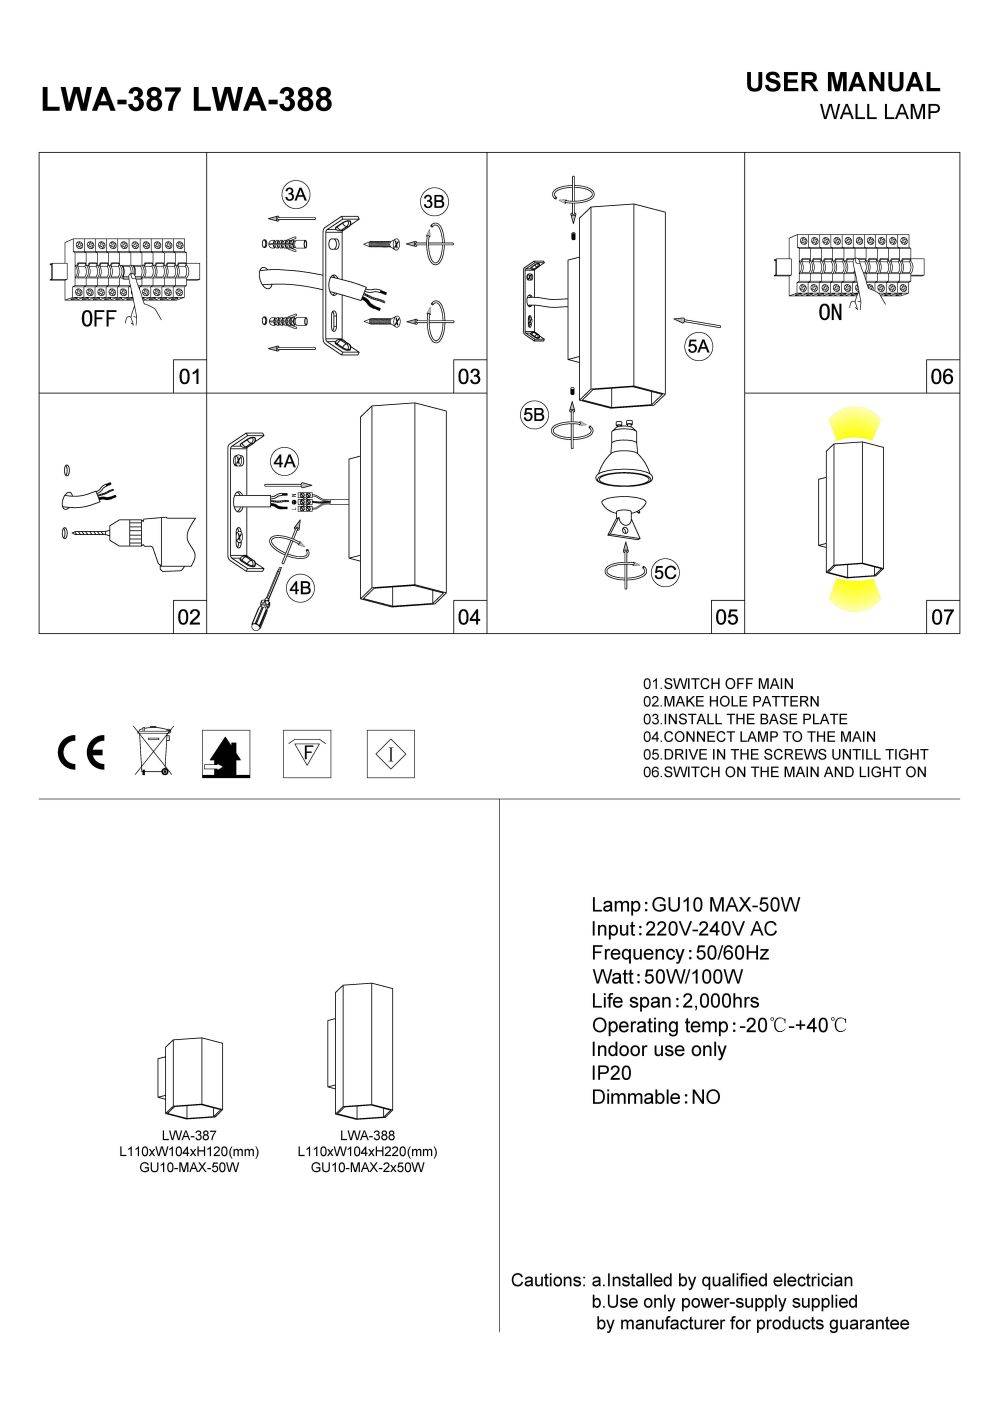 LWA-387 LWA-388 interior LED wall light installation guide